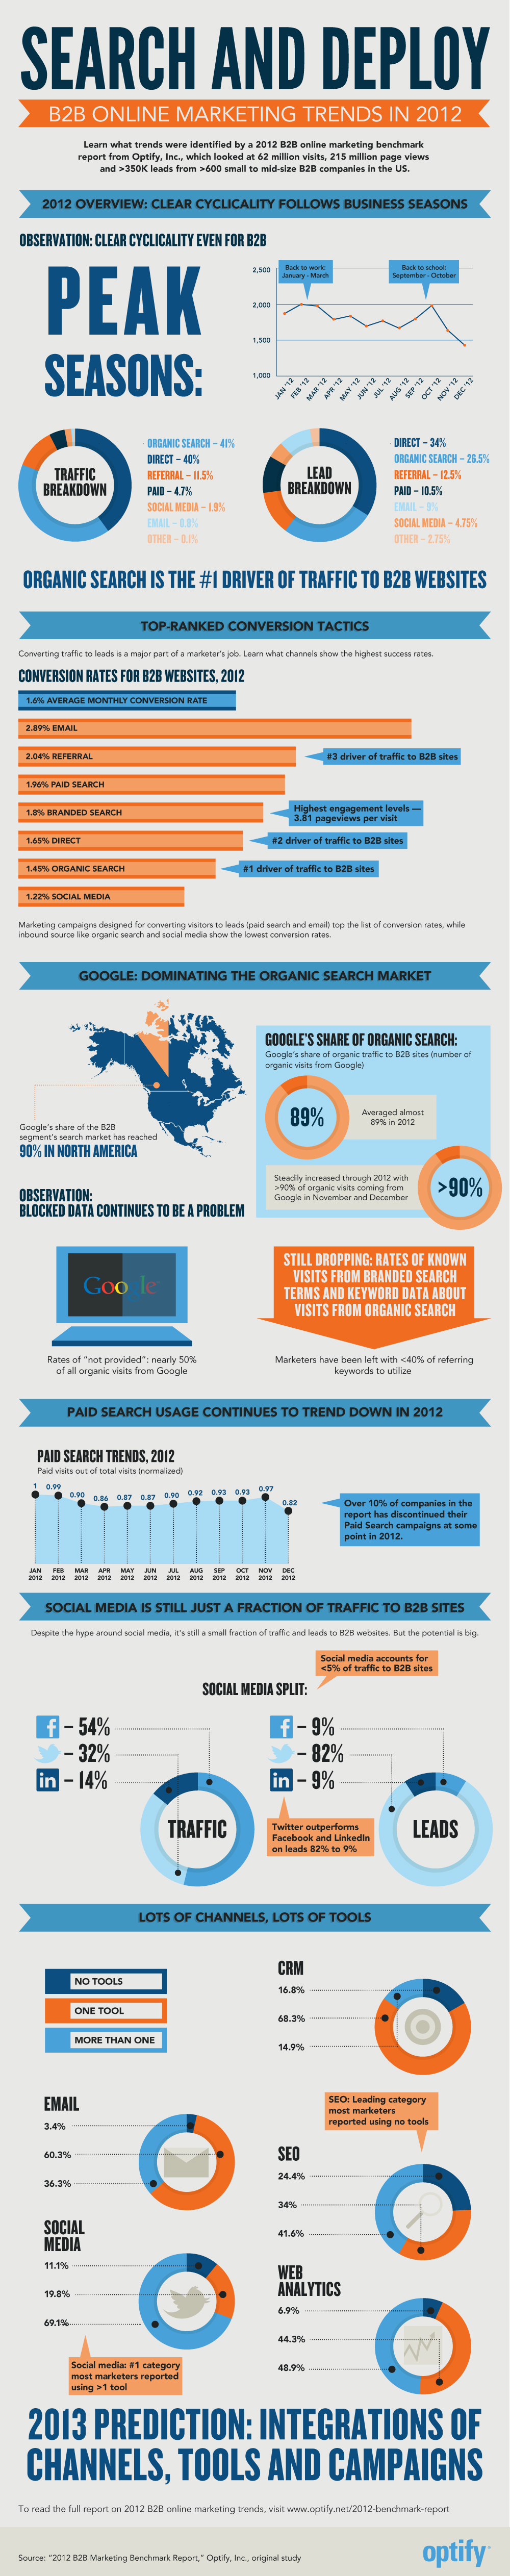 Organic Search Remains King In B2B (Infographic) image Infographic Optify 2012 B2B marketing benchmark report